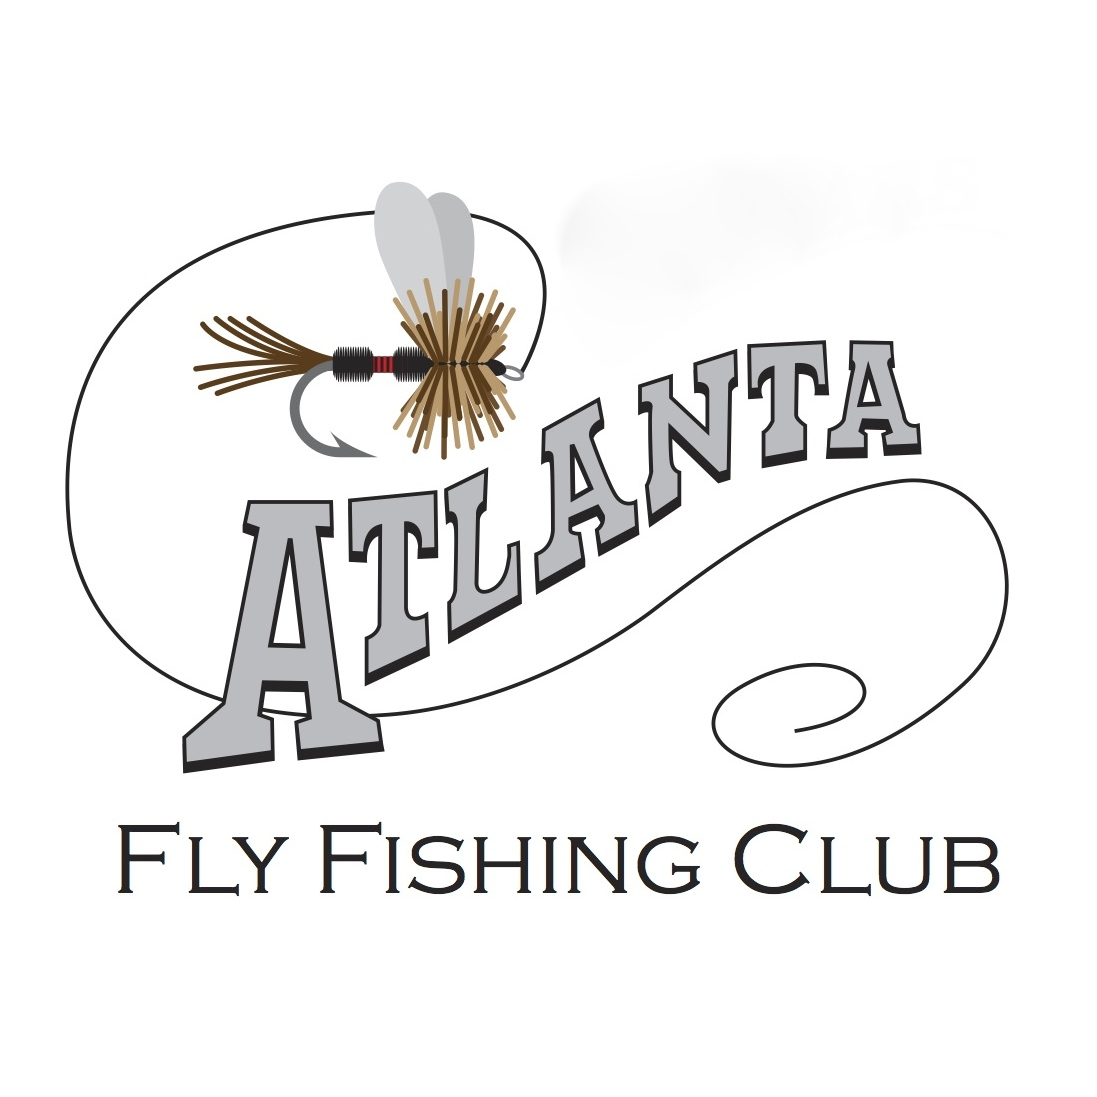 Contact us atlanta fly fishing club for Fly fishing clubs